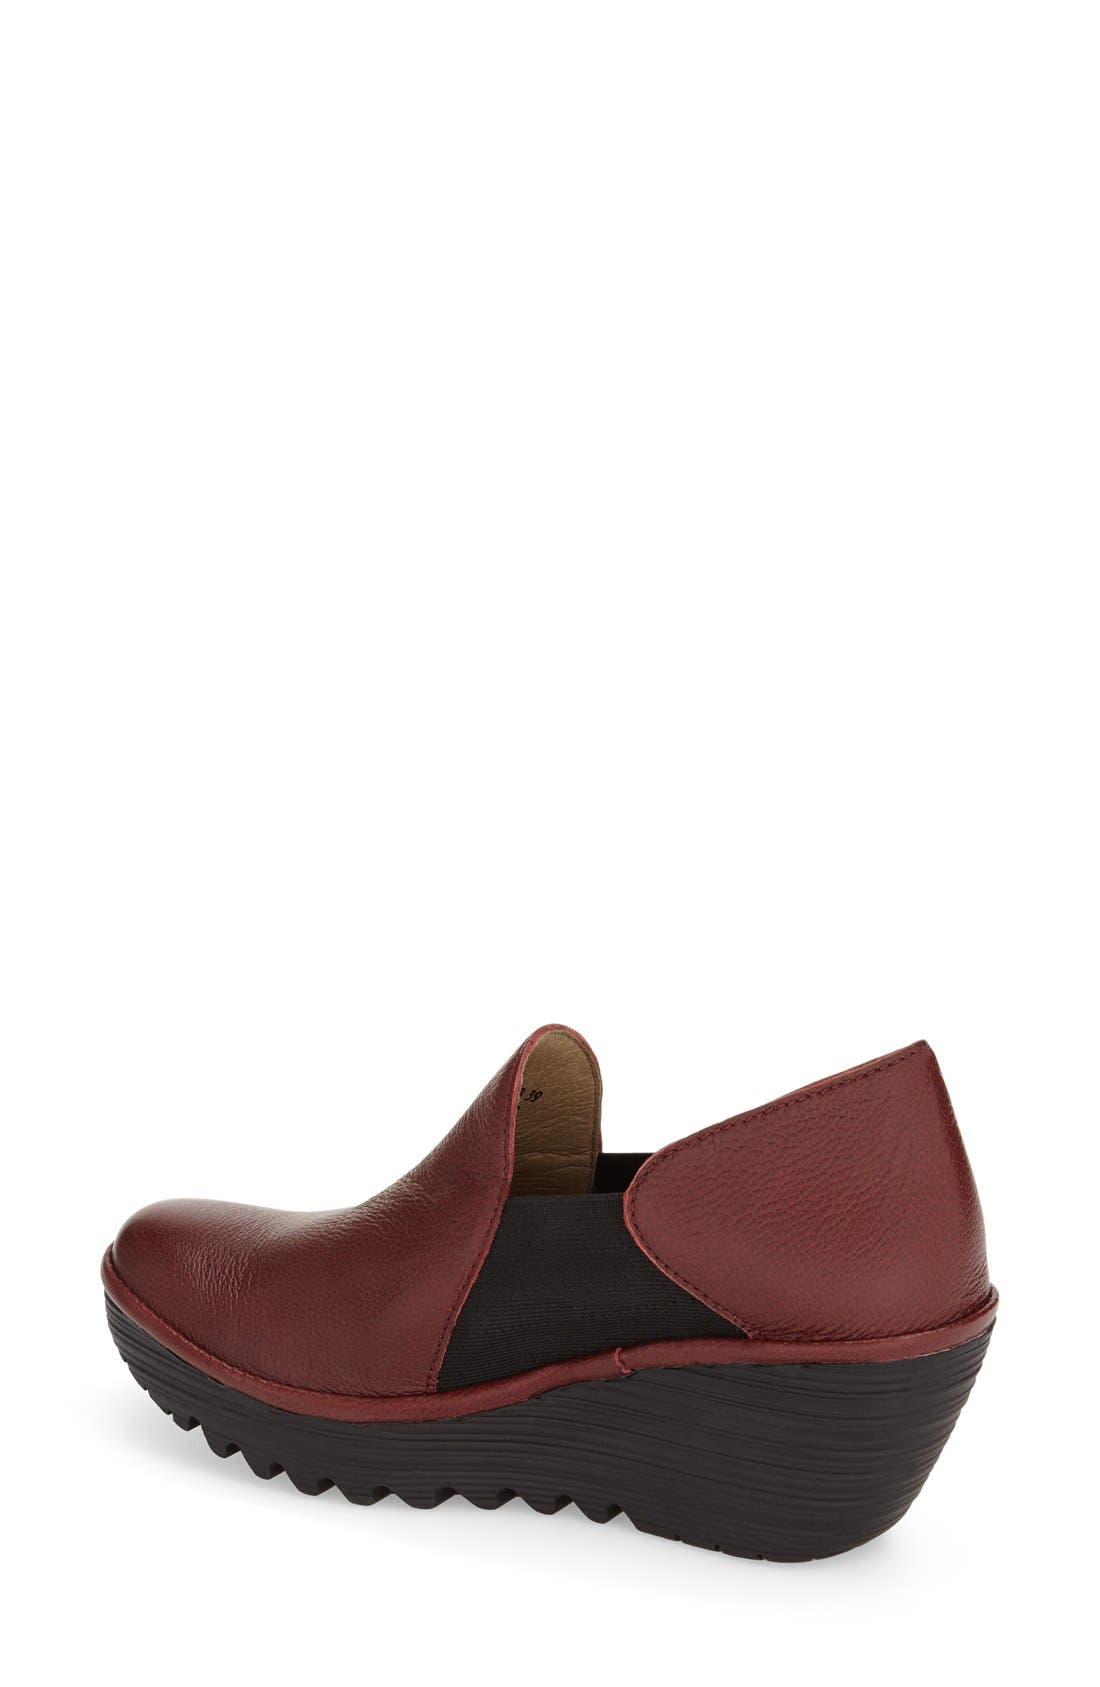 Alternate Image 2  - Fly London 'Yua' Platform Wedge Pump (Women)